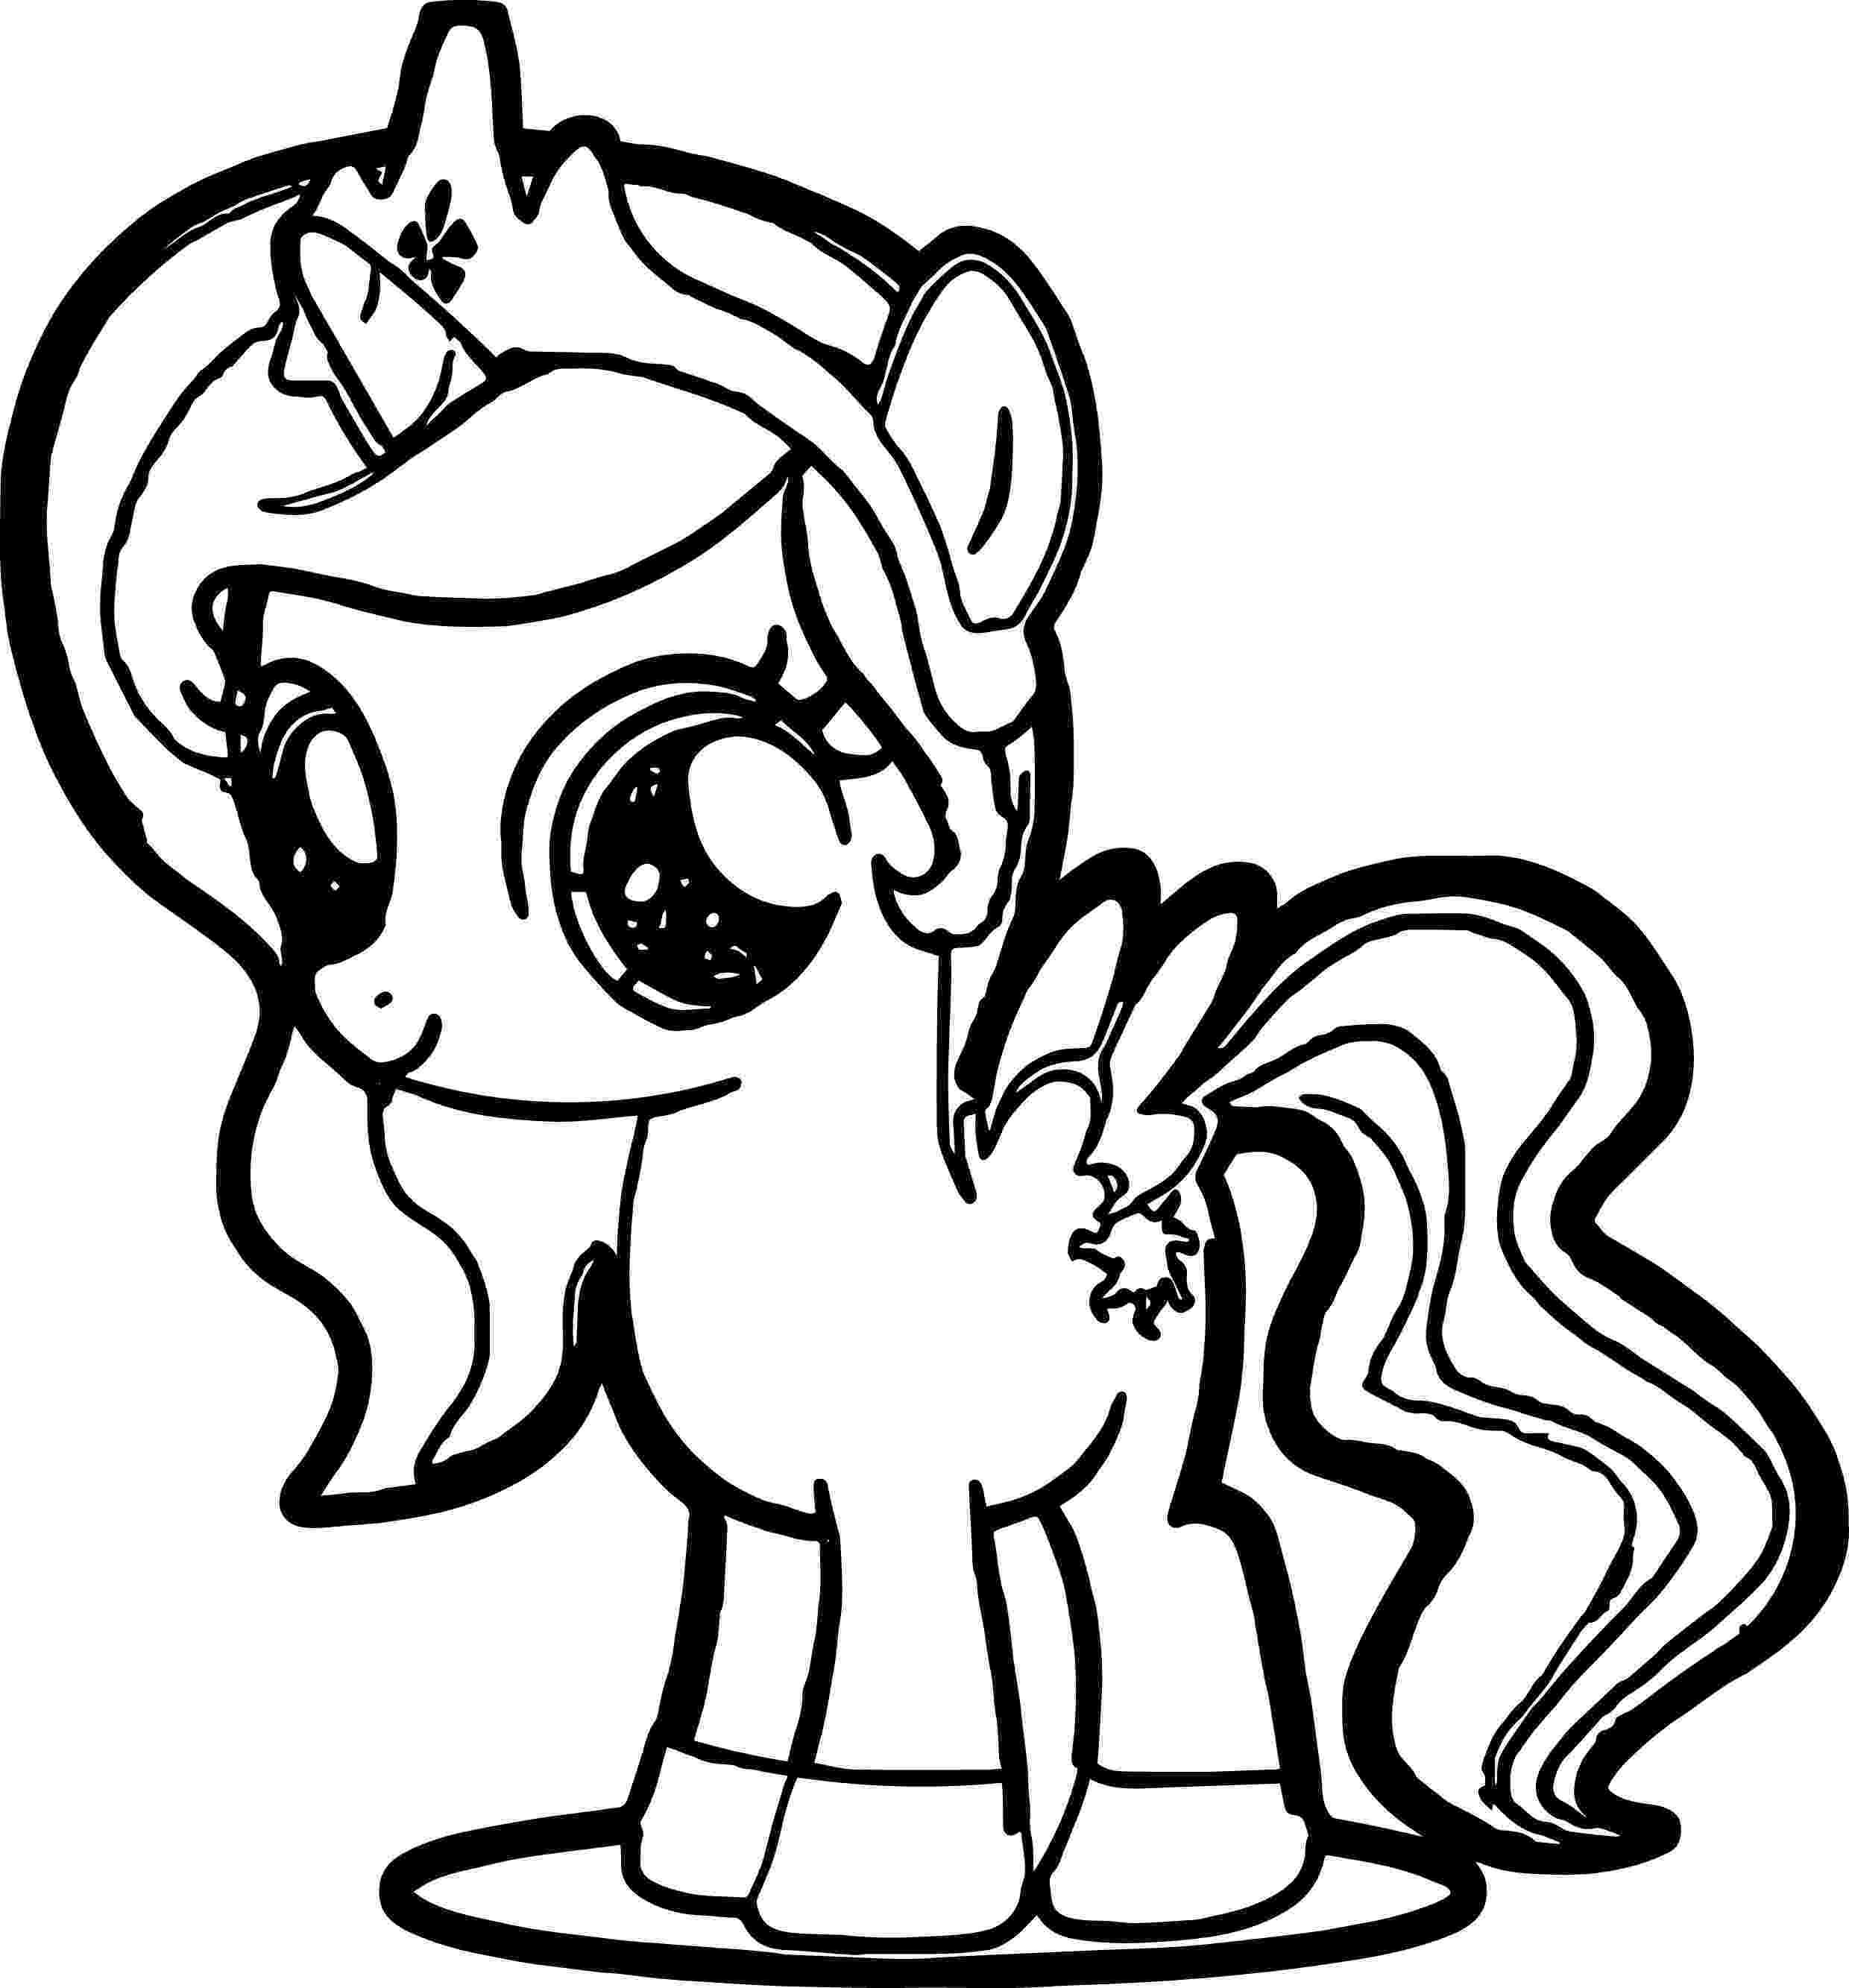 my little pony picters my little pony coloring pages print and colorcom my picters little pony